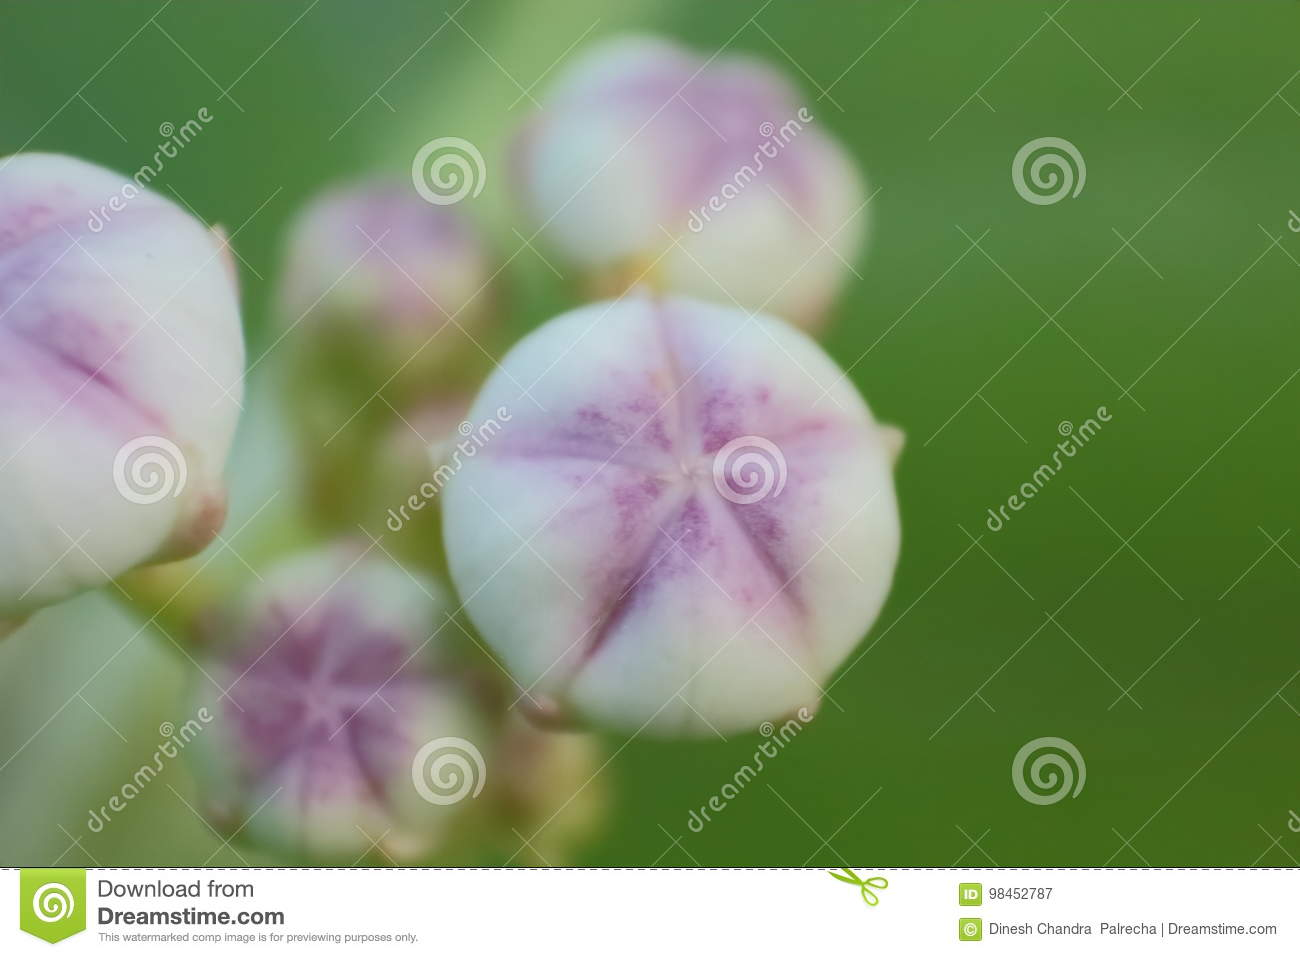 advent of new flowers, background, macro photography stock image